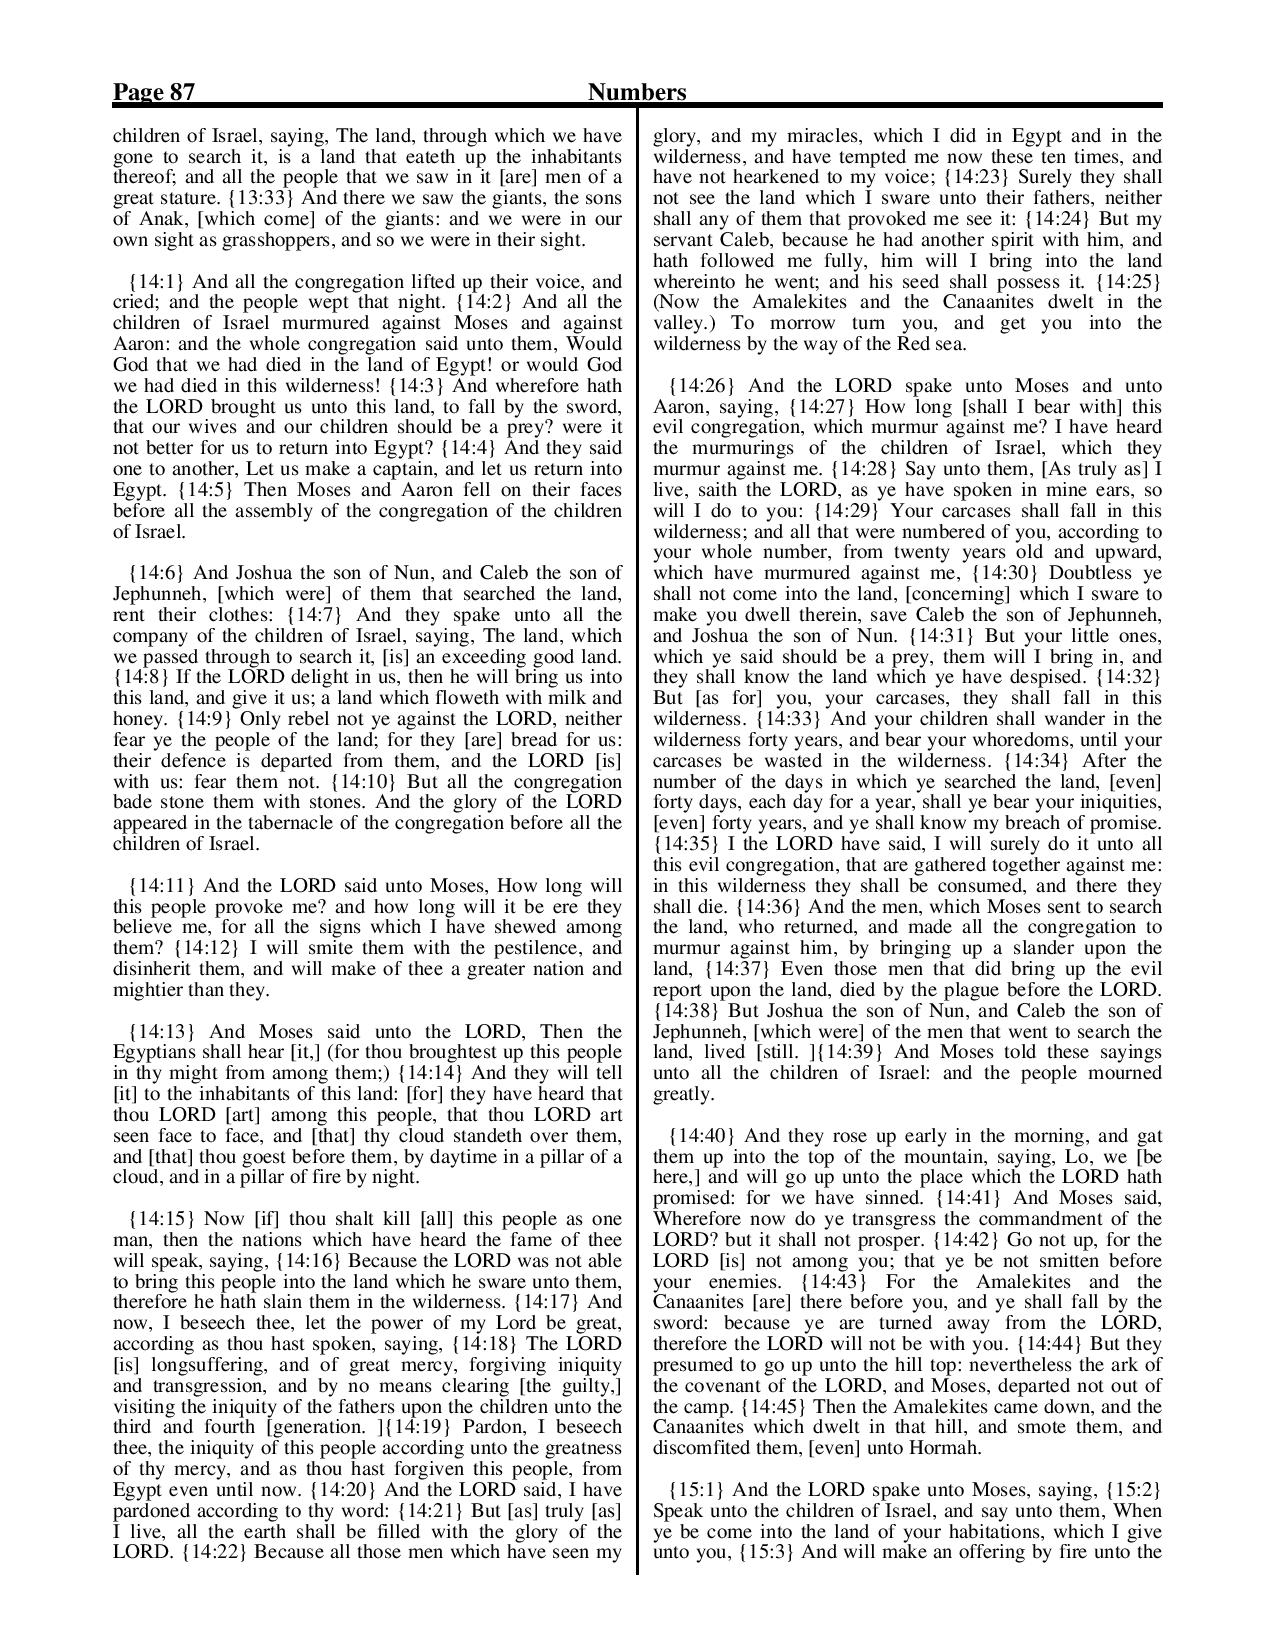 King-James-Bible-KJV-Bible-PDF-page-108